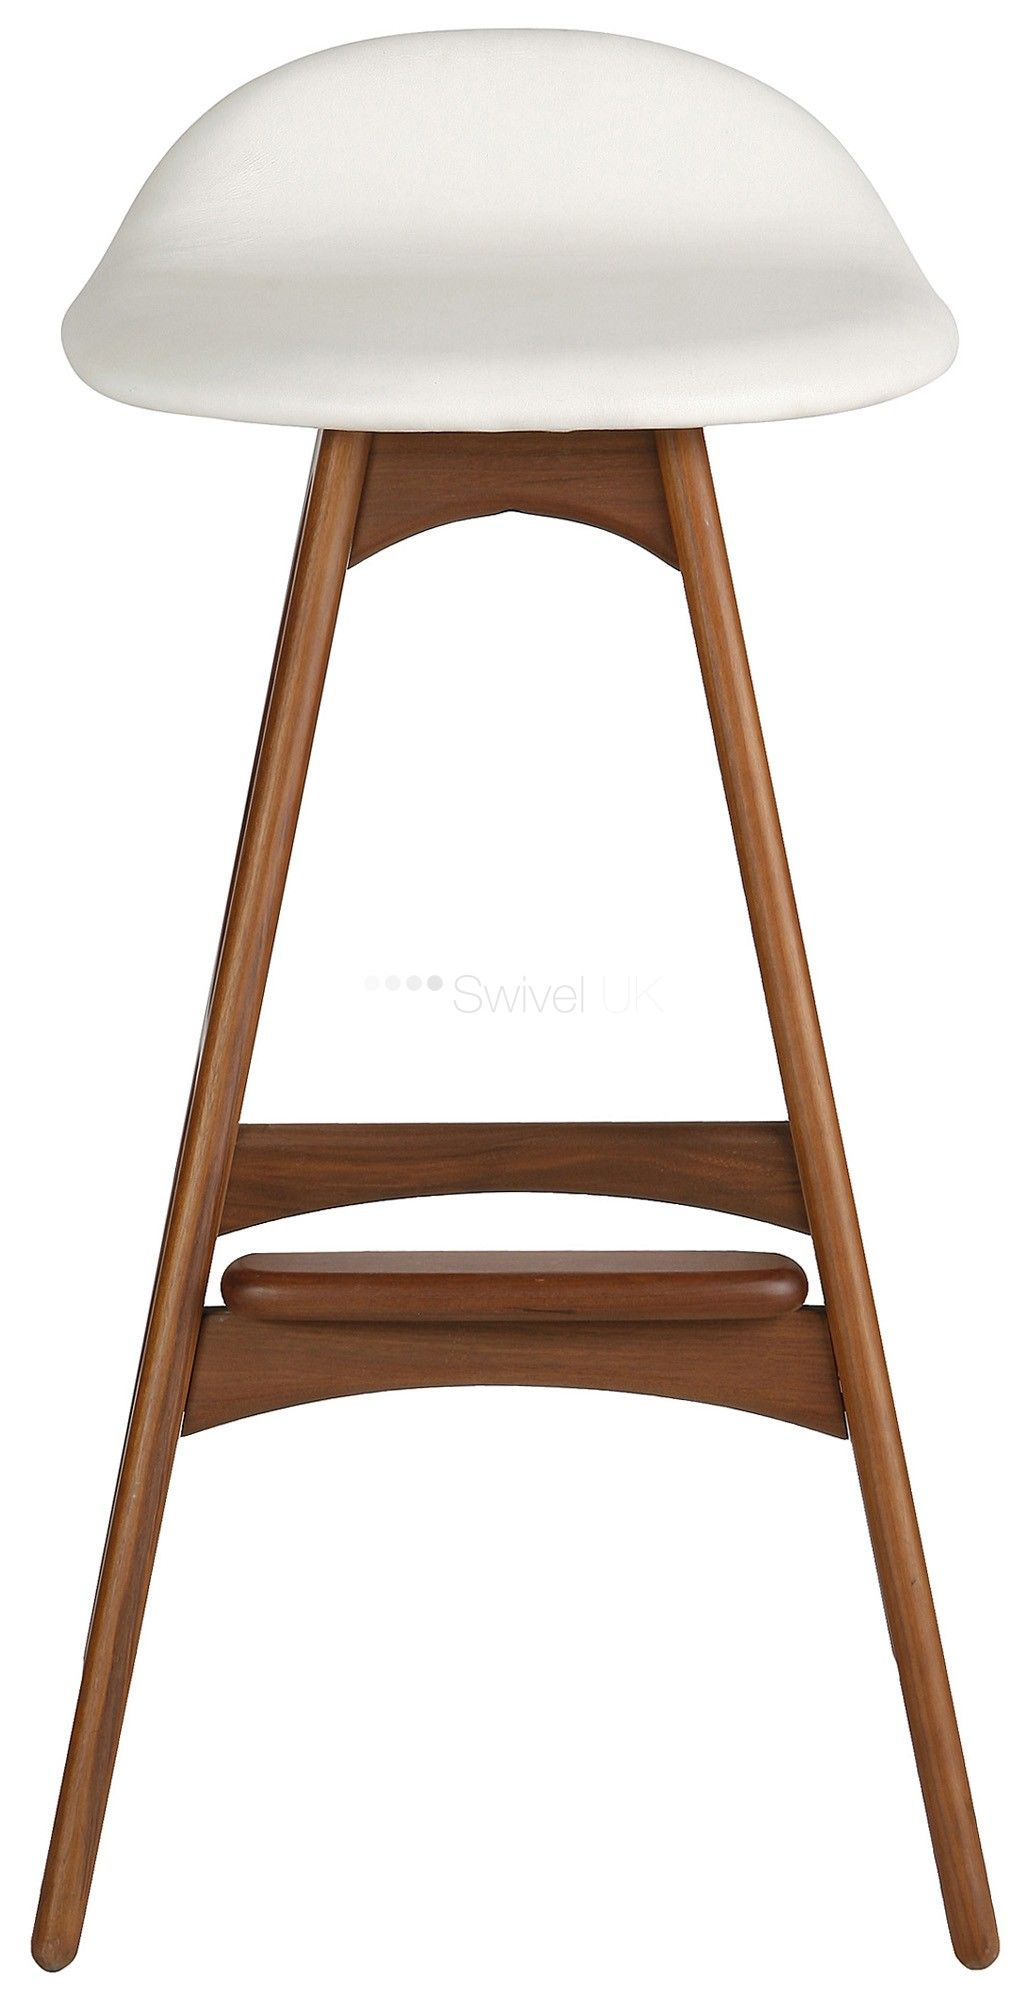 OD Bar Stool Erik Buck Designer OD Bar Stool SwivelUK